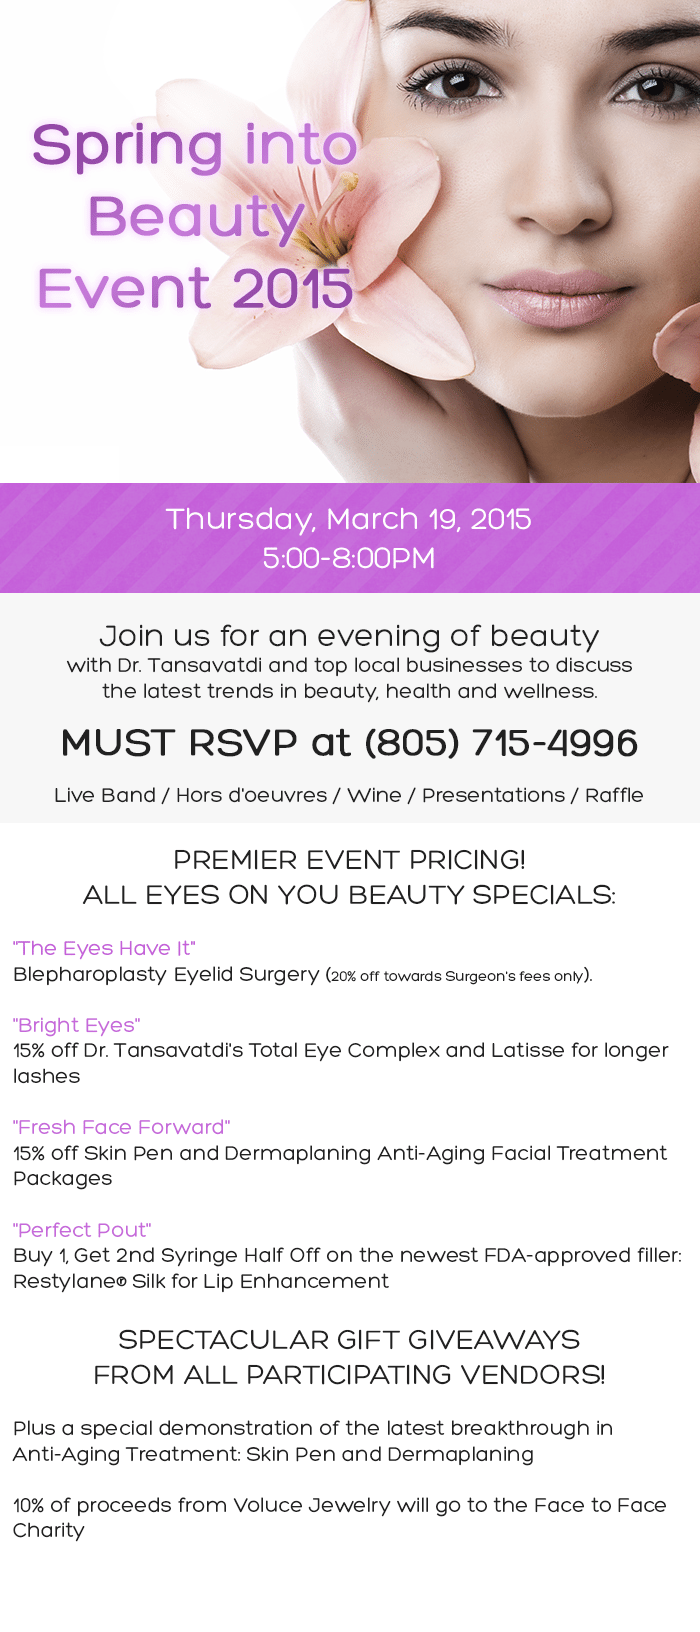 Spring into Beauty Event 2015! (March 19, 2015)